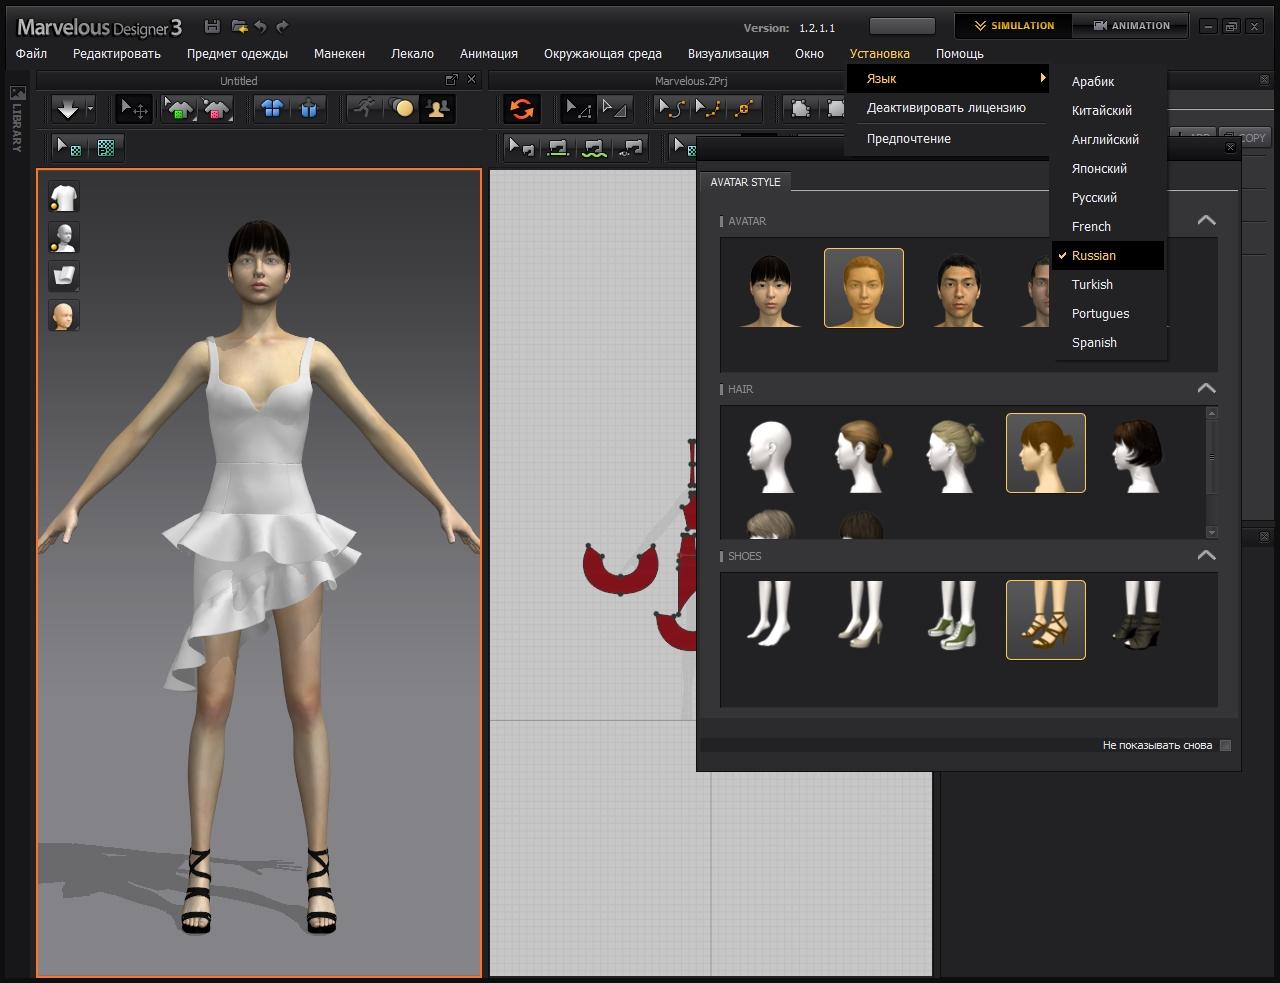 Marvelous Designer 3 v1.2.1.1 Enterprise (2013/ML/RUS) x86-x64.